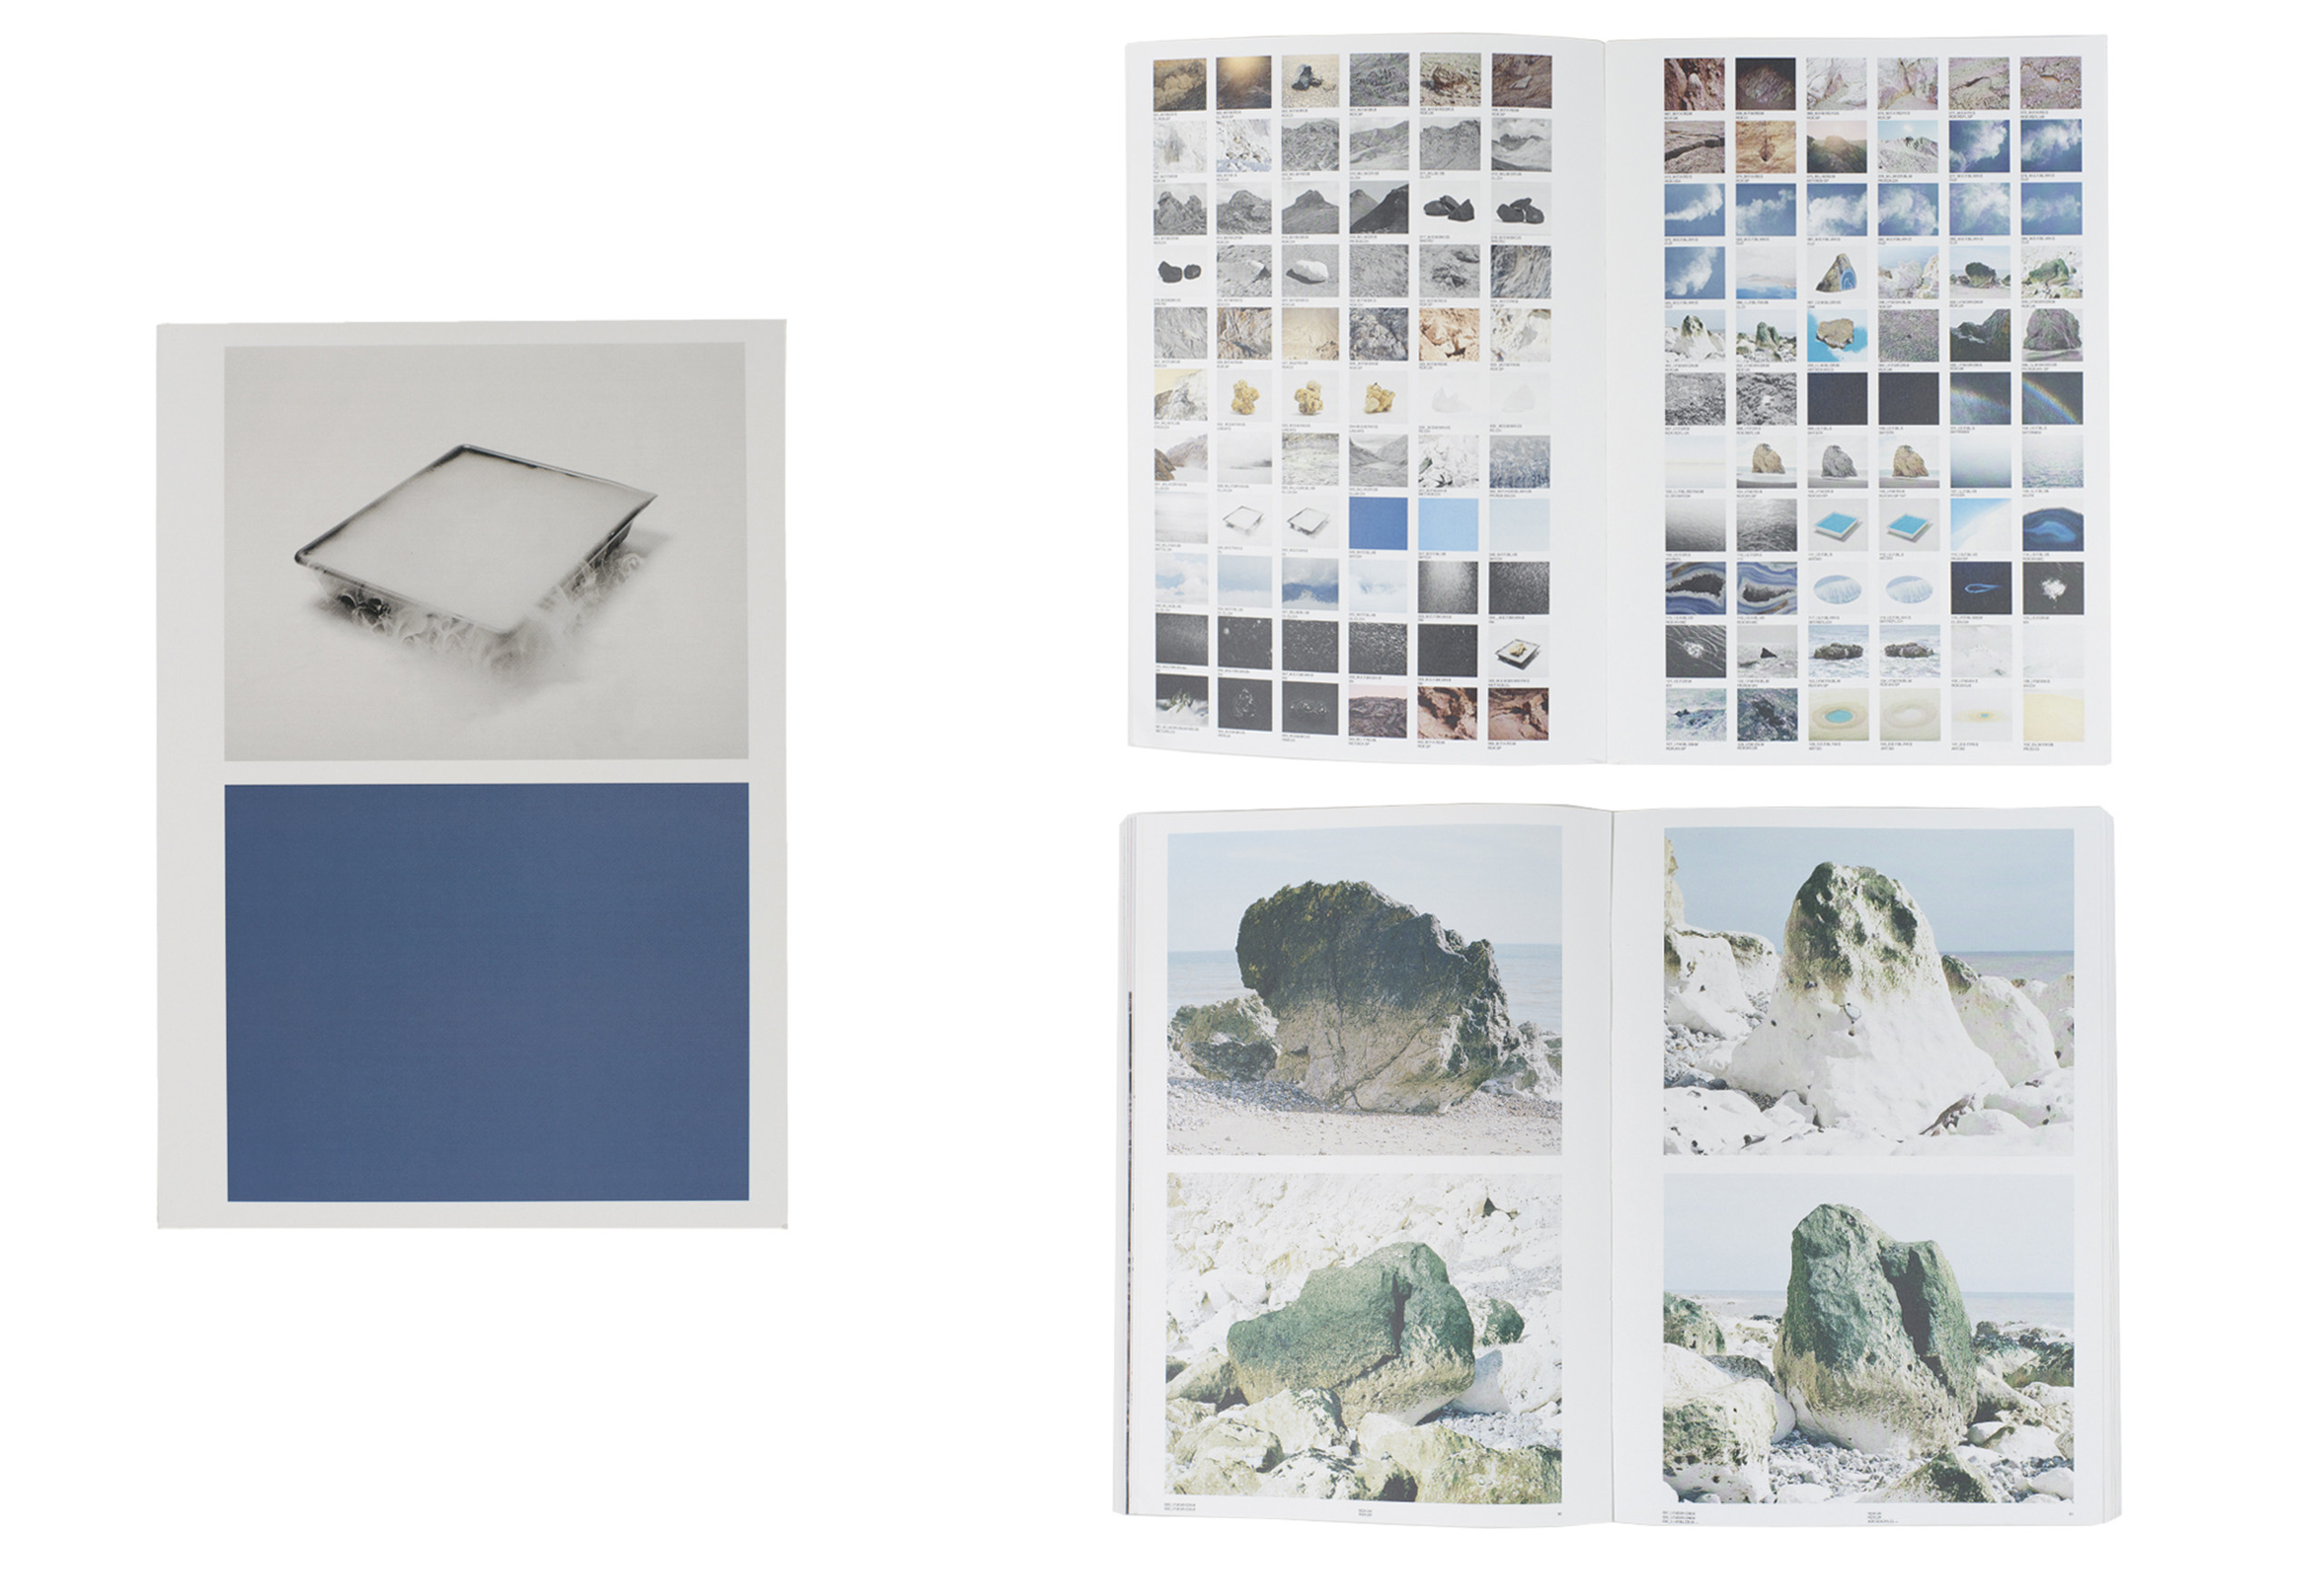 A Geological Index of the Landscape by Benoît Jeannet, Self-published. Short-listed title for First PhotoBook.